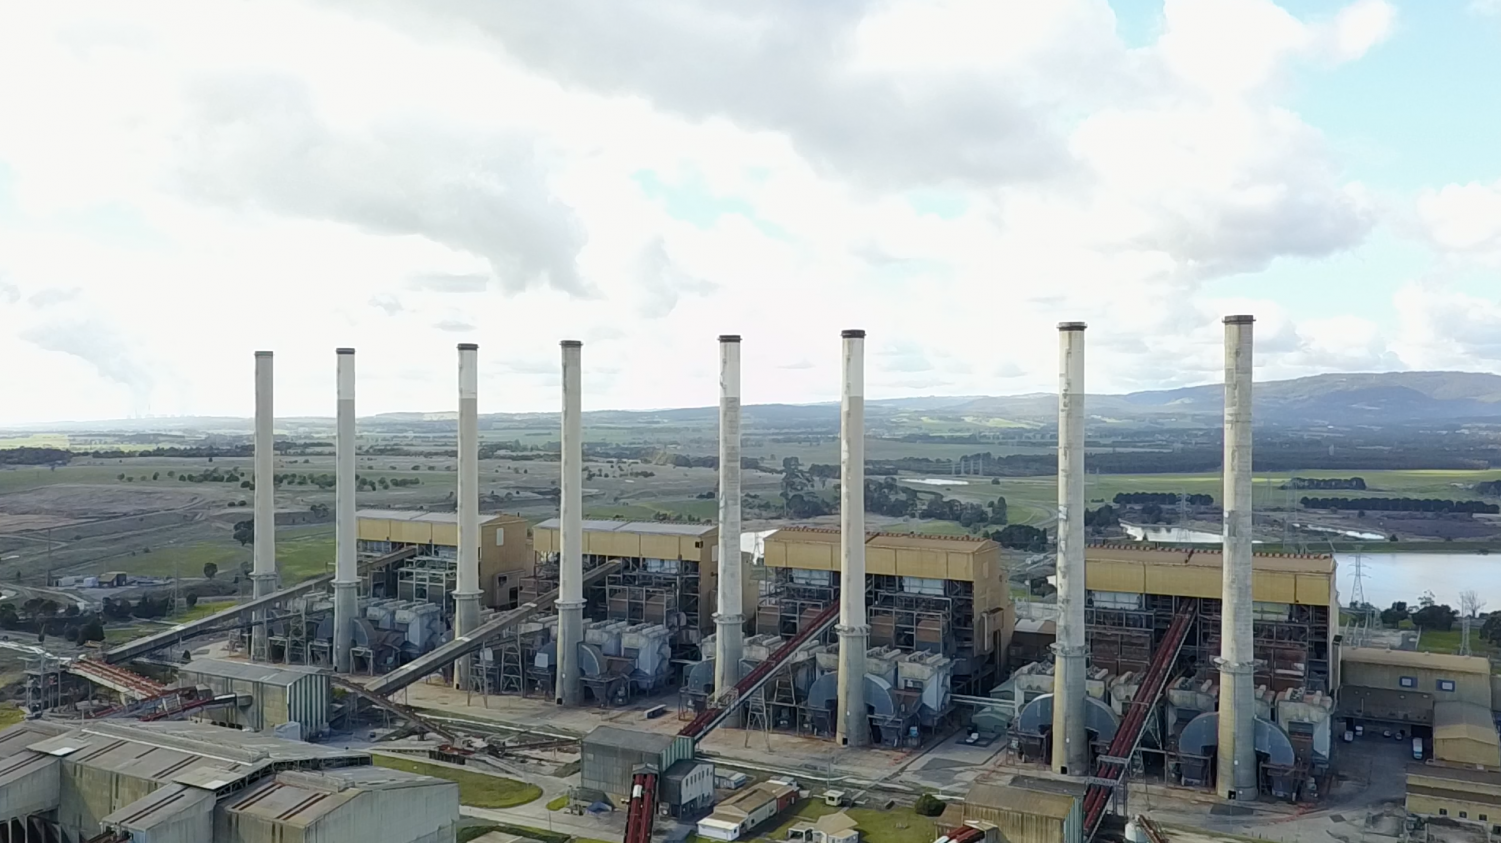 The now dormant Hazelwood Power Station. Photo: Andrew Dodd